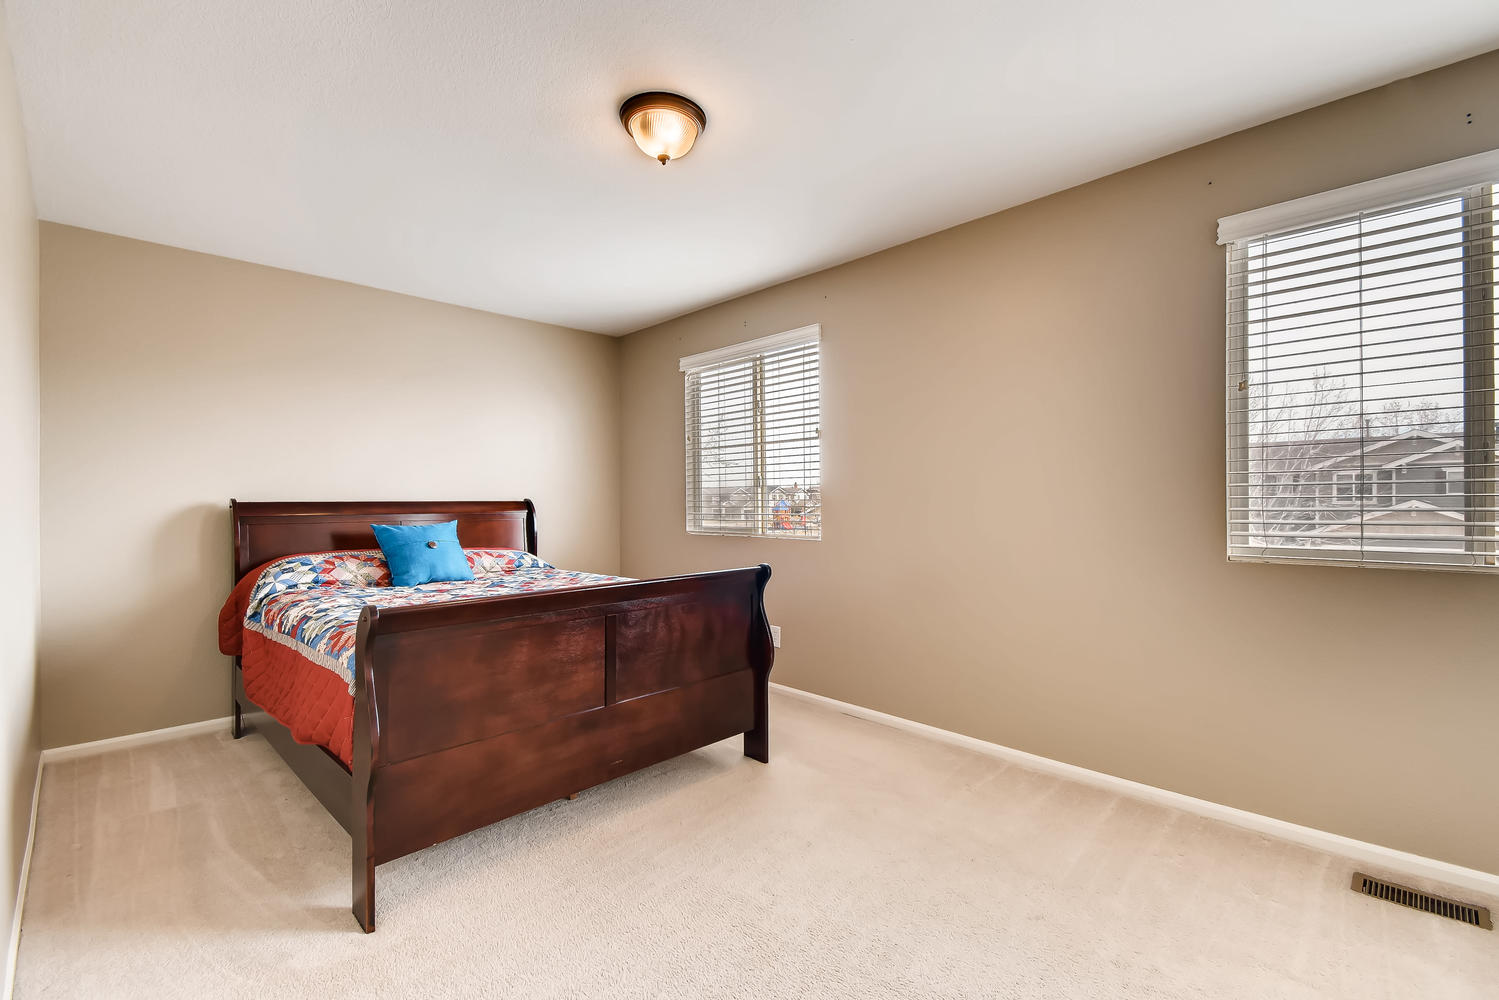 REAL ESTATE LISTING: 10595 Forester Pl Longmont CO Bedroom #2